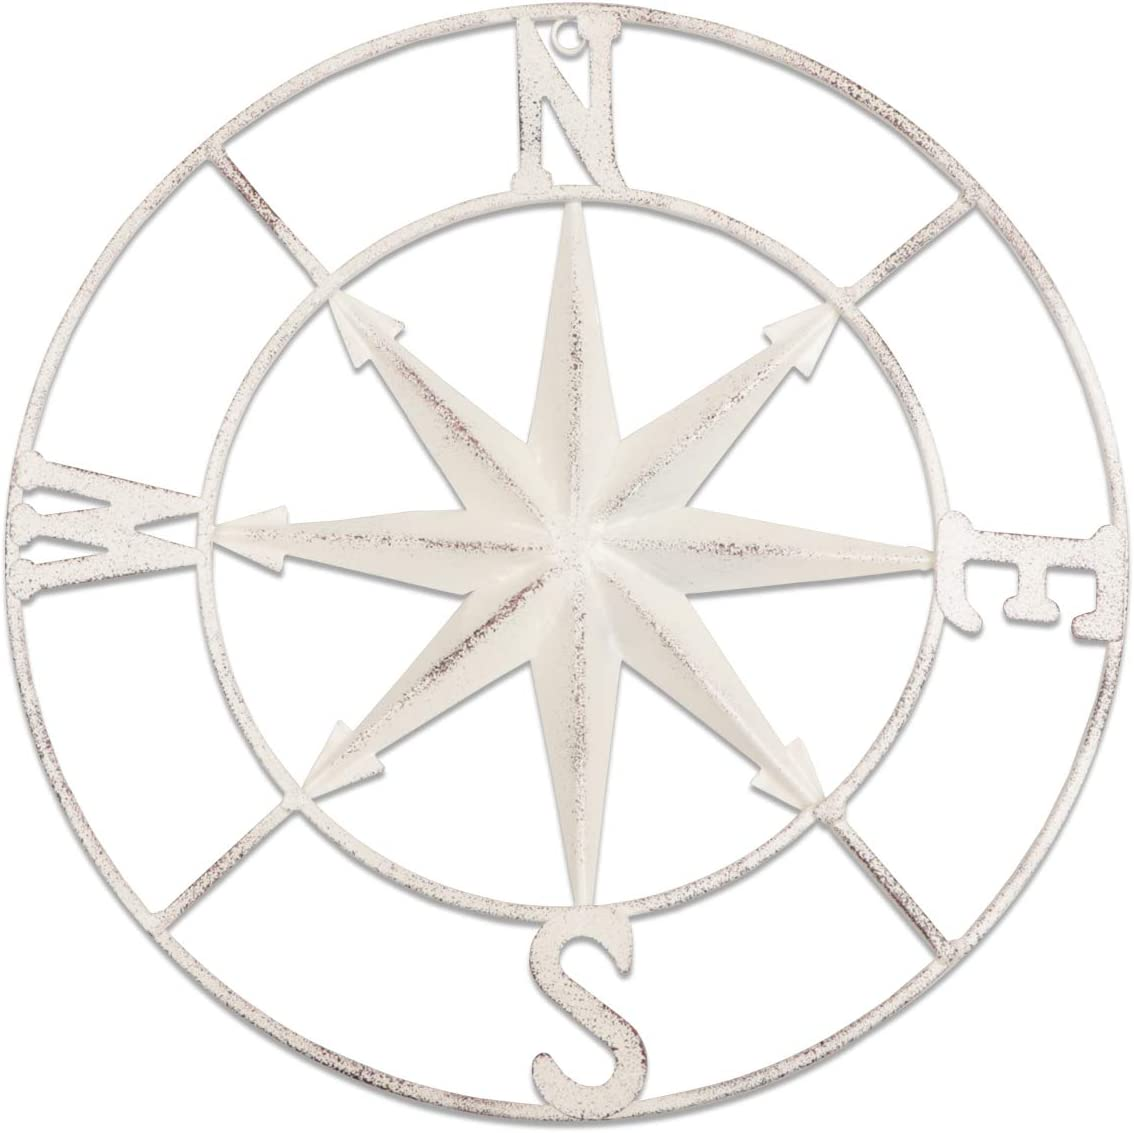 "YiYa 11.8"" Distressed Metal Compass Mural Decoration Nautical Decoration Bedroom Living Room Garden Office Wall Hanging Beach Theme Home Decoration (White)"